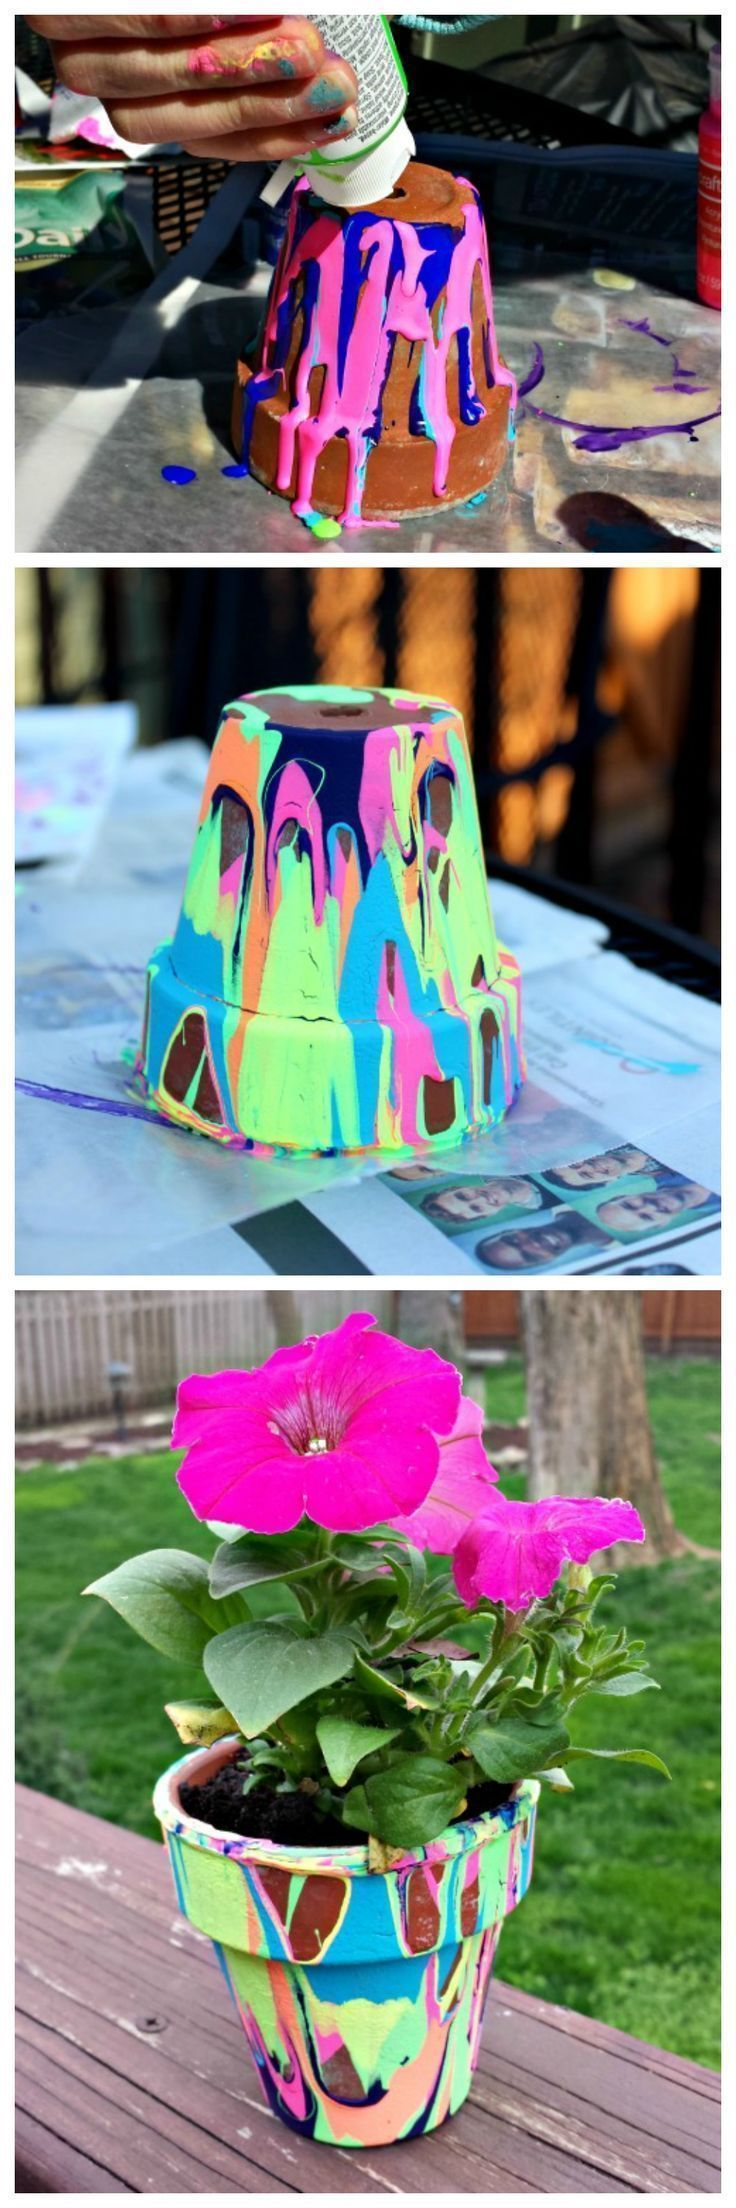 12 super cute garden crafts for kids outdoors creative and craft